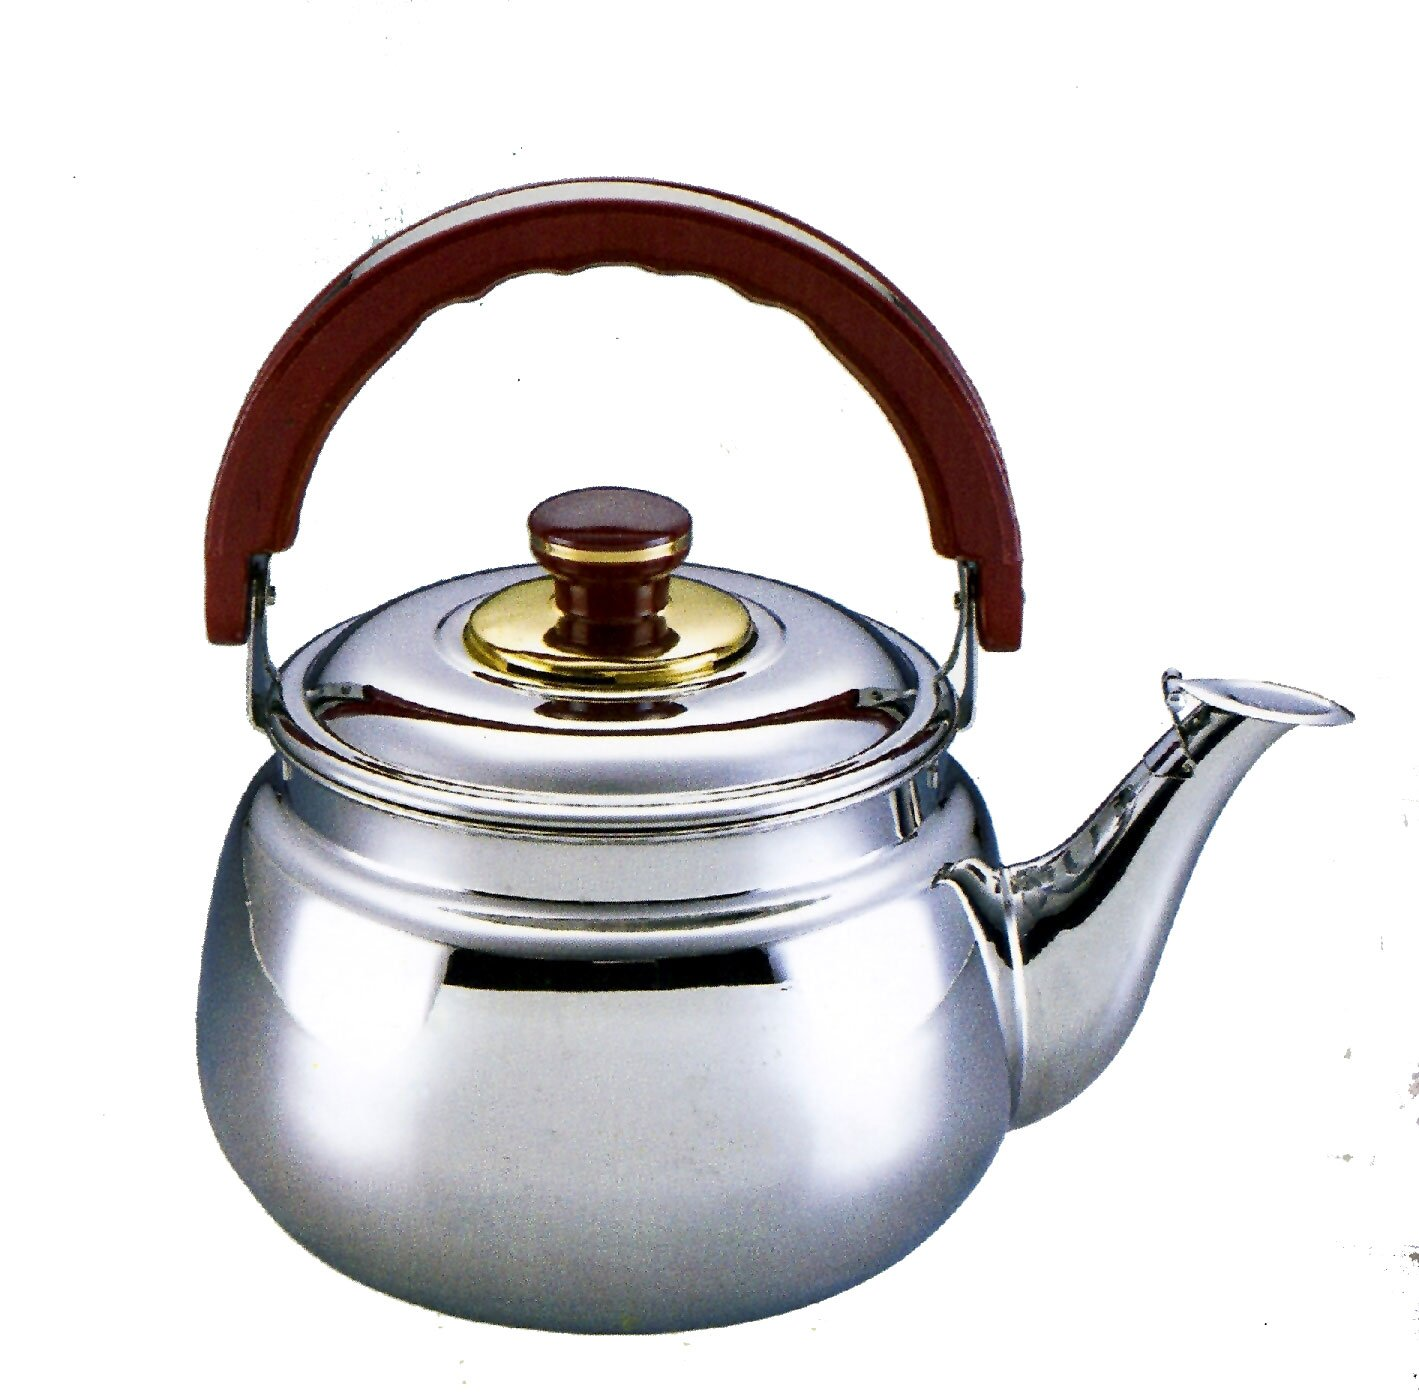 Borella casalighi Range Kettle, Stainless Steel, Grey 21077